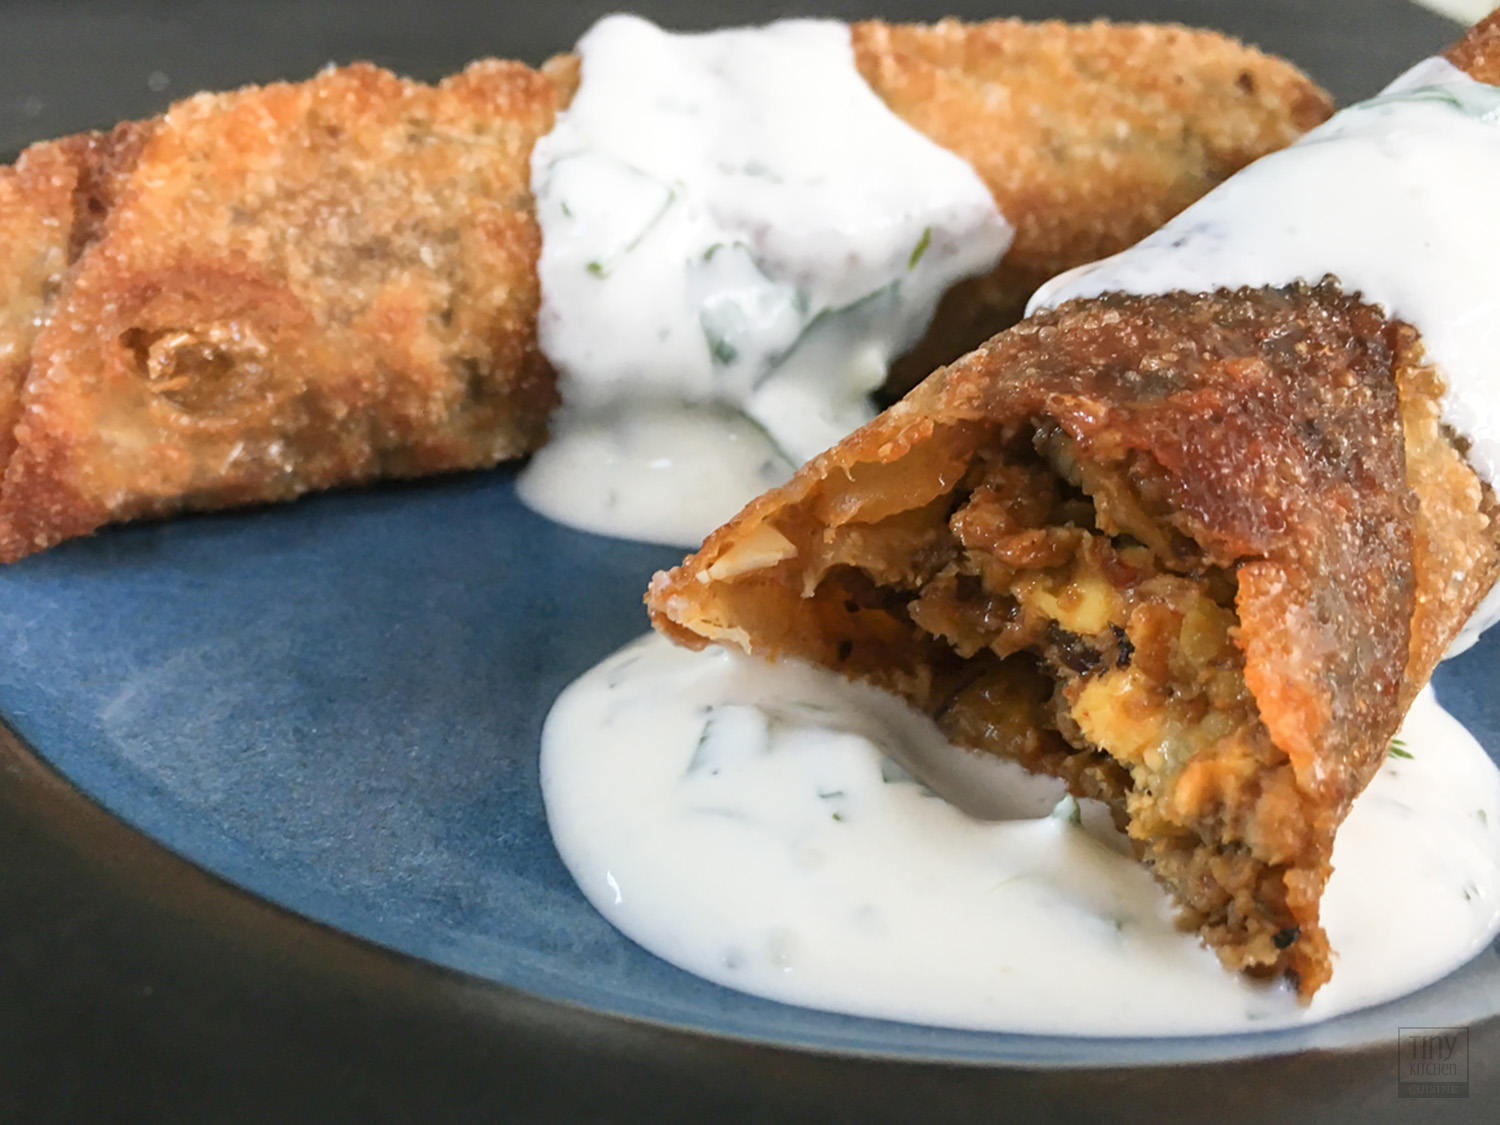 Want an easy method for how to make empanadas? This recipe for vegetarian empanads uses the flavors of a traditional beef and chorizo empanada with an untraditional twist! | Tiny Kitchen Cuisine | https://tiny.kitchen